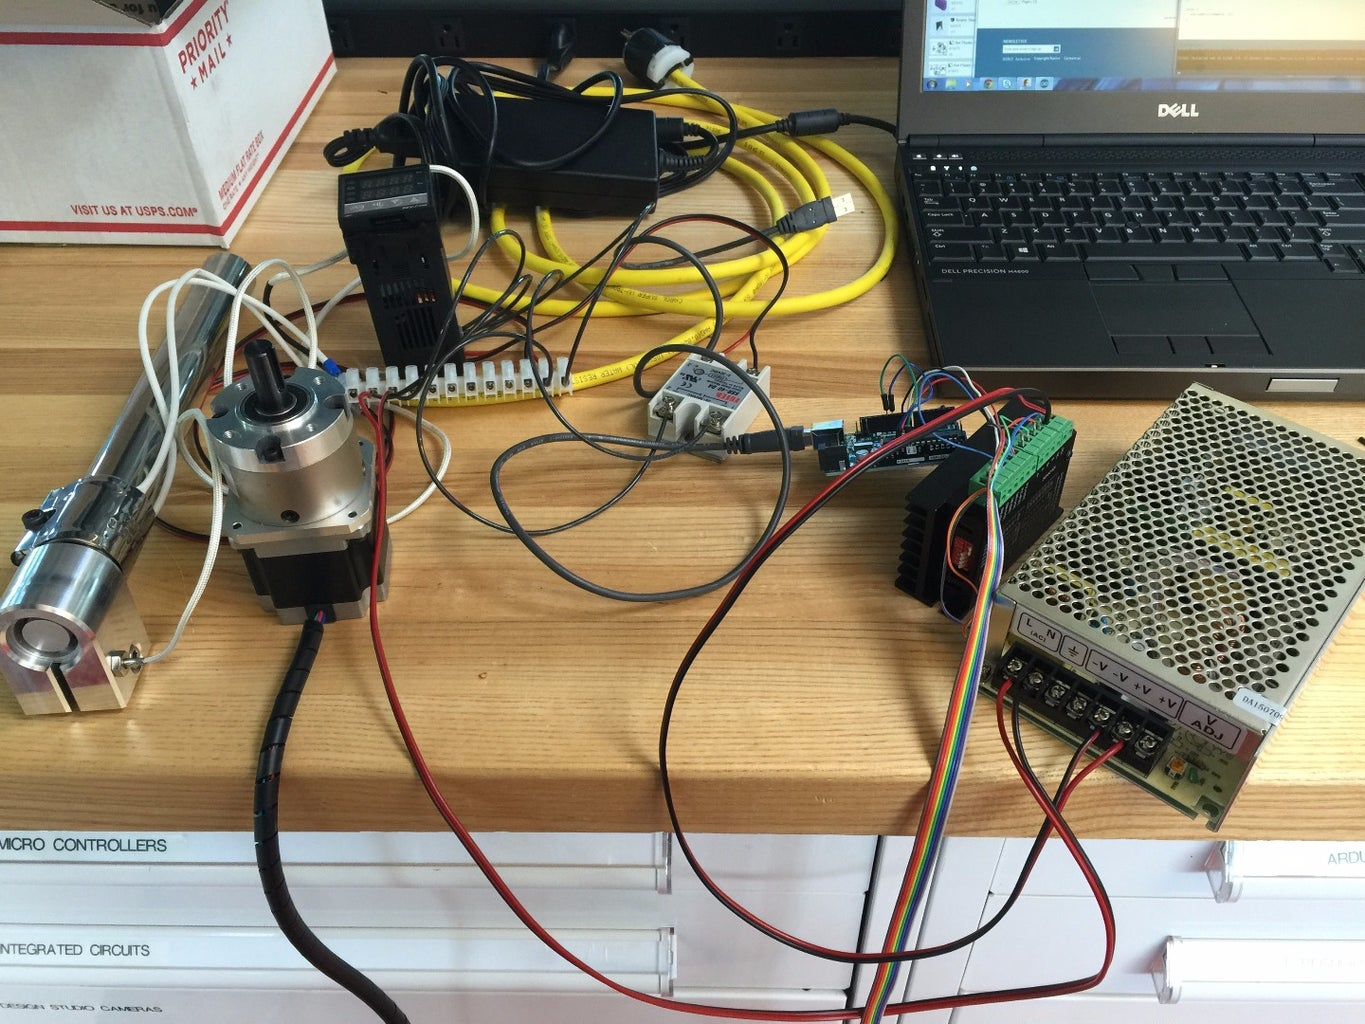 Assemble Electronics and Test